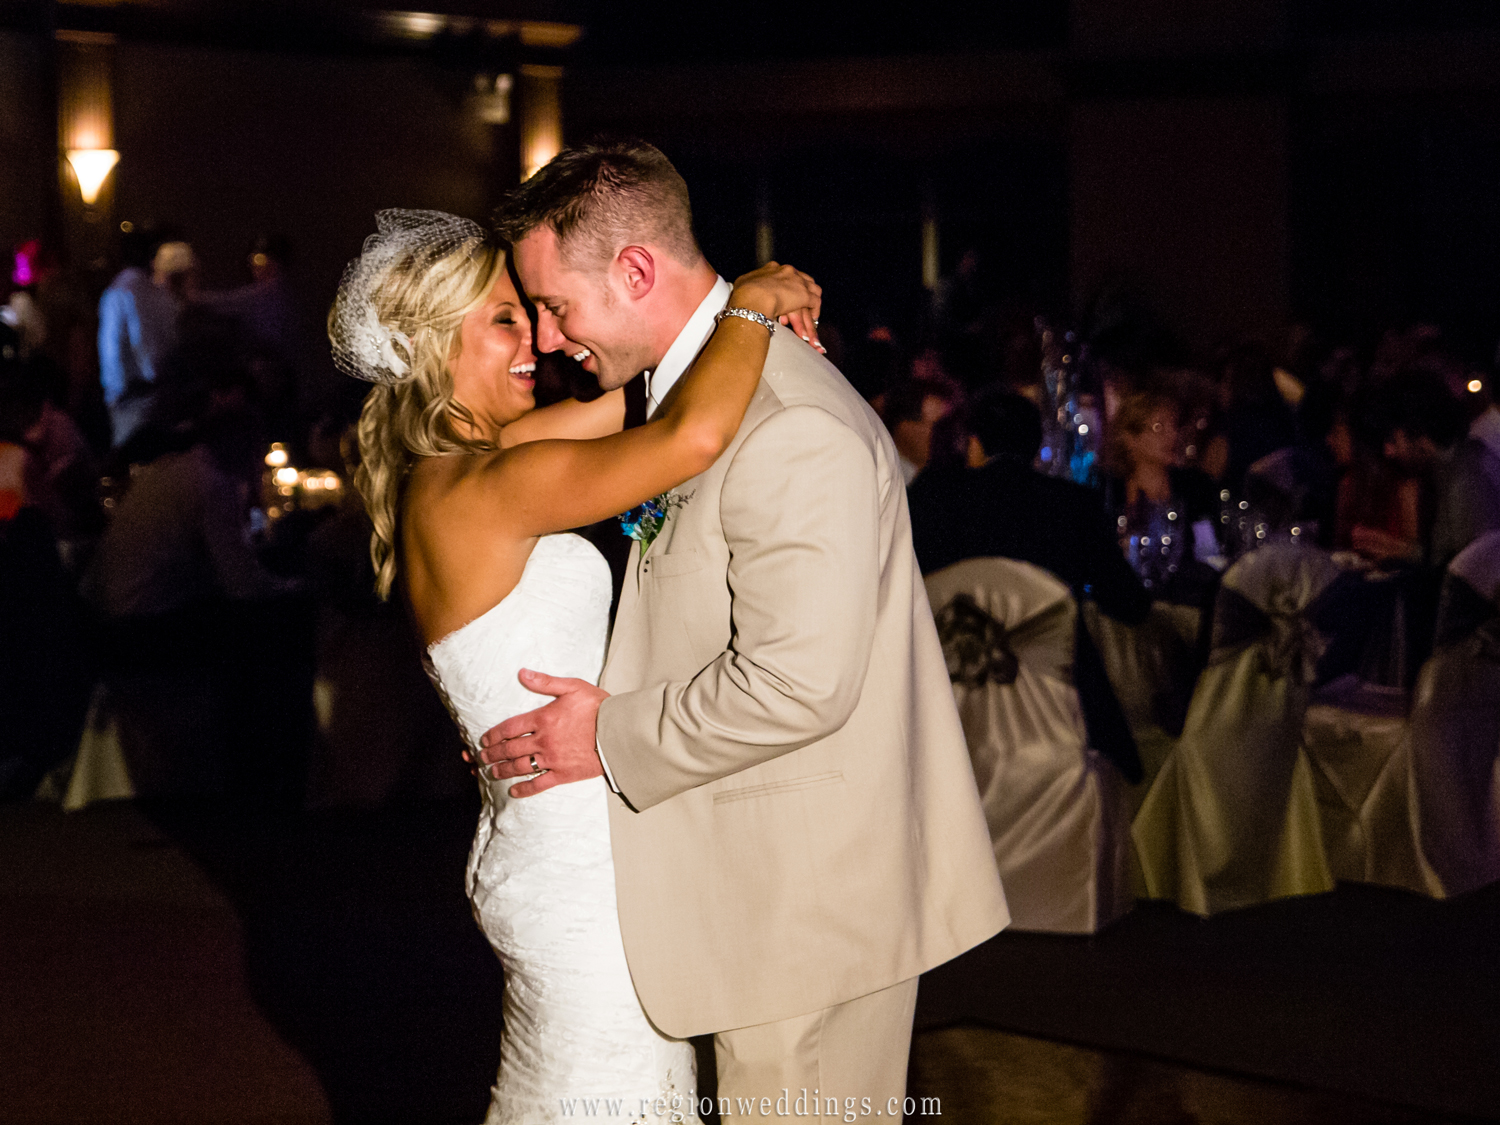 The bride and groom take their first dance at The Halls of St. George in Schererville, Indiana.